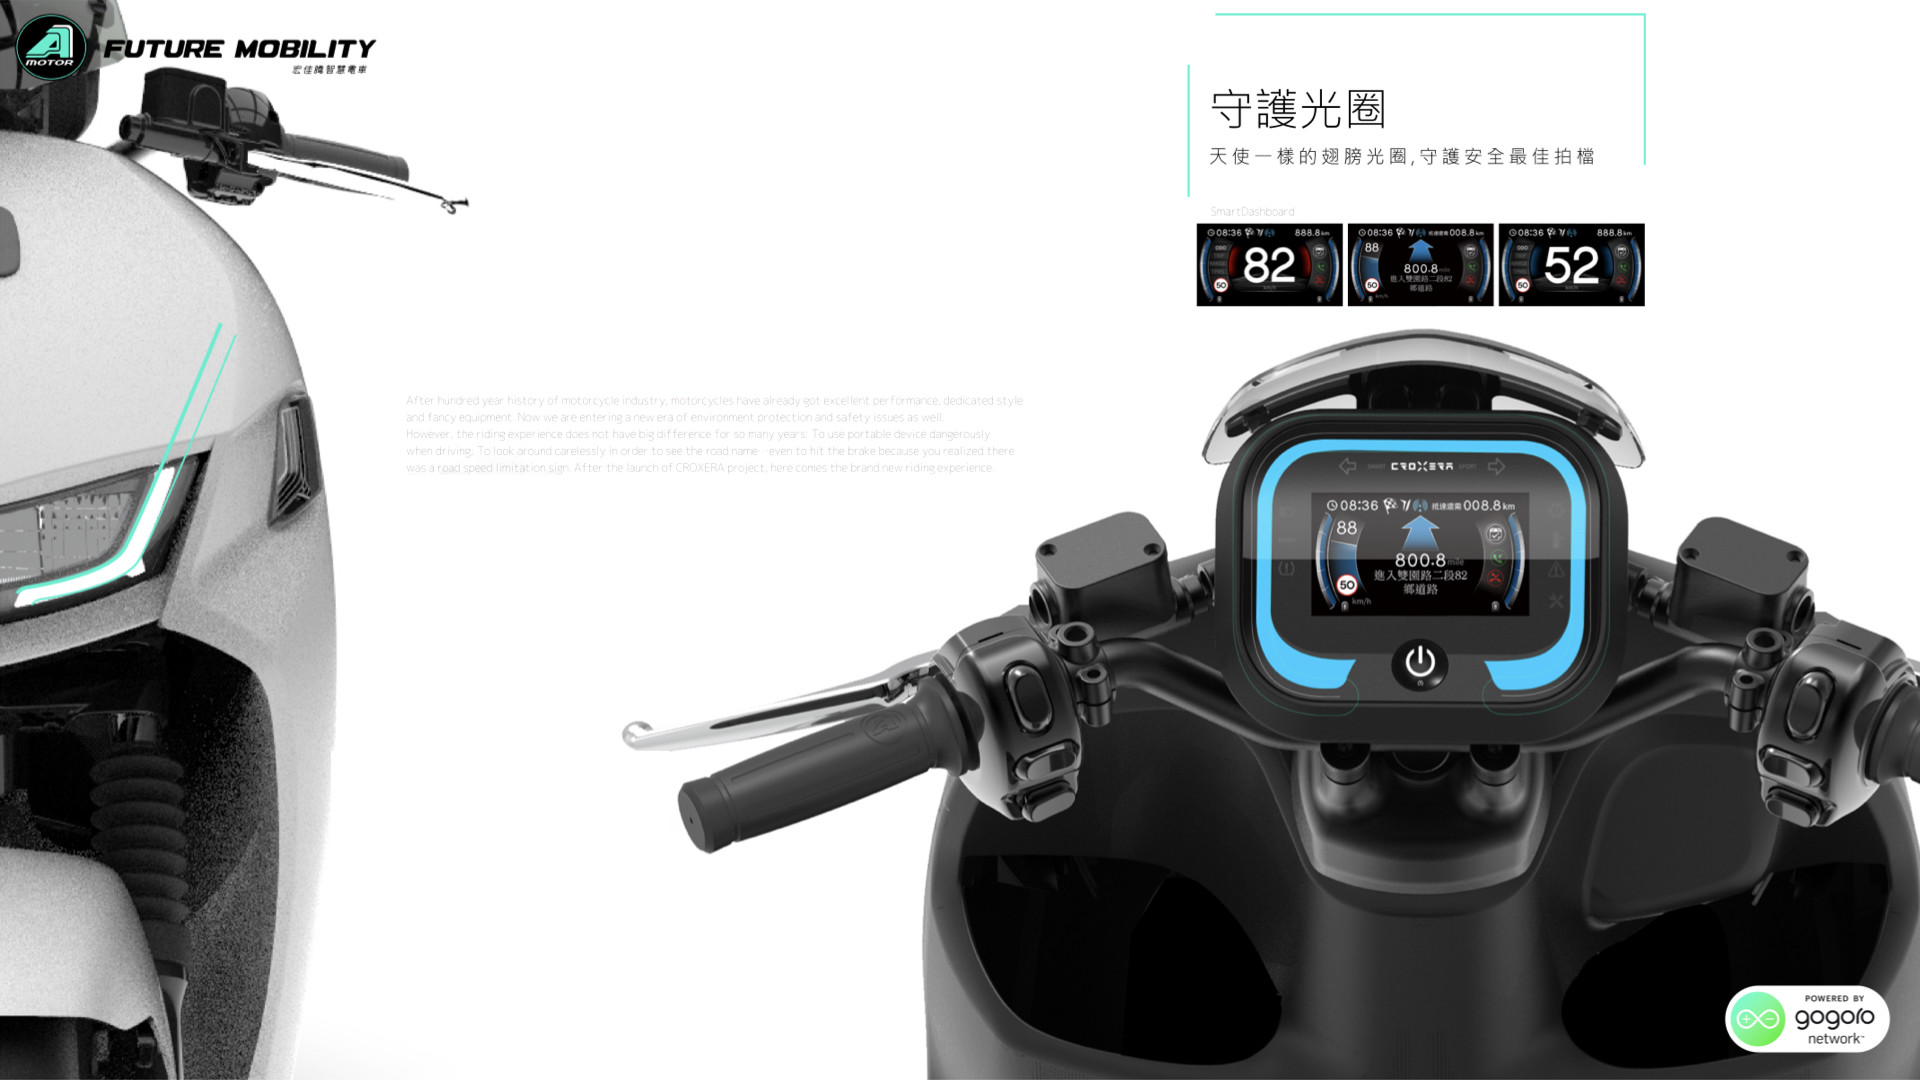 Electric vehicle, Car, , Aeon Motor, Motorcycle, Electric motorcycles and scooters, Gogoro, , , PGO Scooters, car, Product, Helmet, Vehicle, Technology, Motorcycle accessories, Honda, Cameras & optics